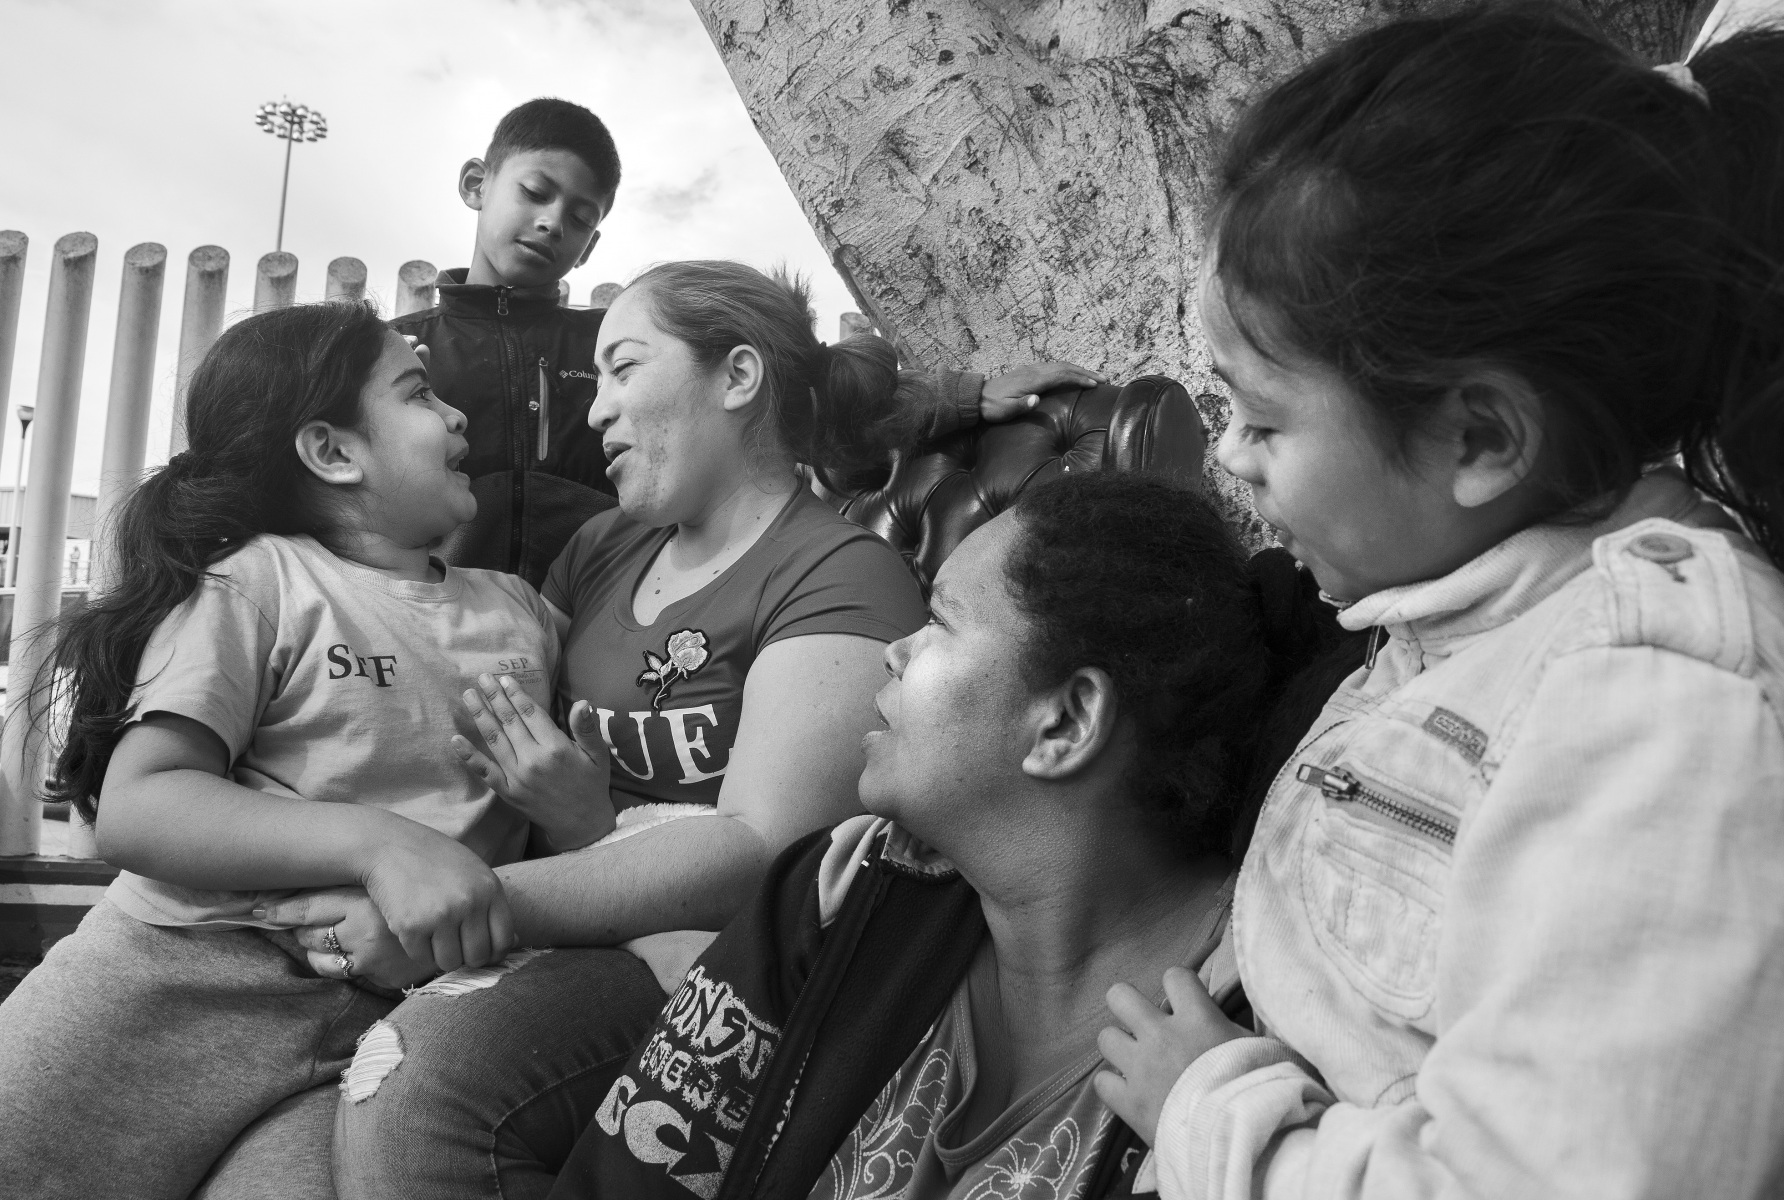 """""""We have been waiting for around three weeks,"""" says Ana Madrid Gomez (center), who laughs with her daughter, Sasha Madrid (far left) as they pass the time at the port of entry in Tijuana. All members of her group, including Taina Leiva, and her daughter, Ruth Leiva (far right) are migrants originally from Honduras."""